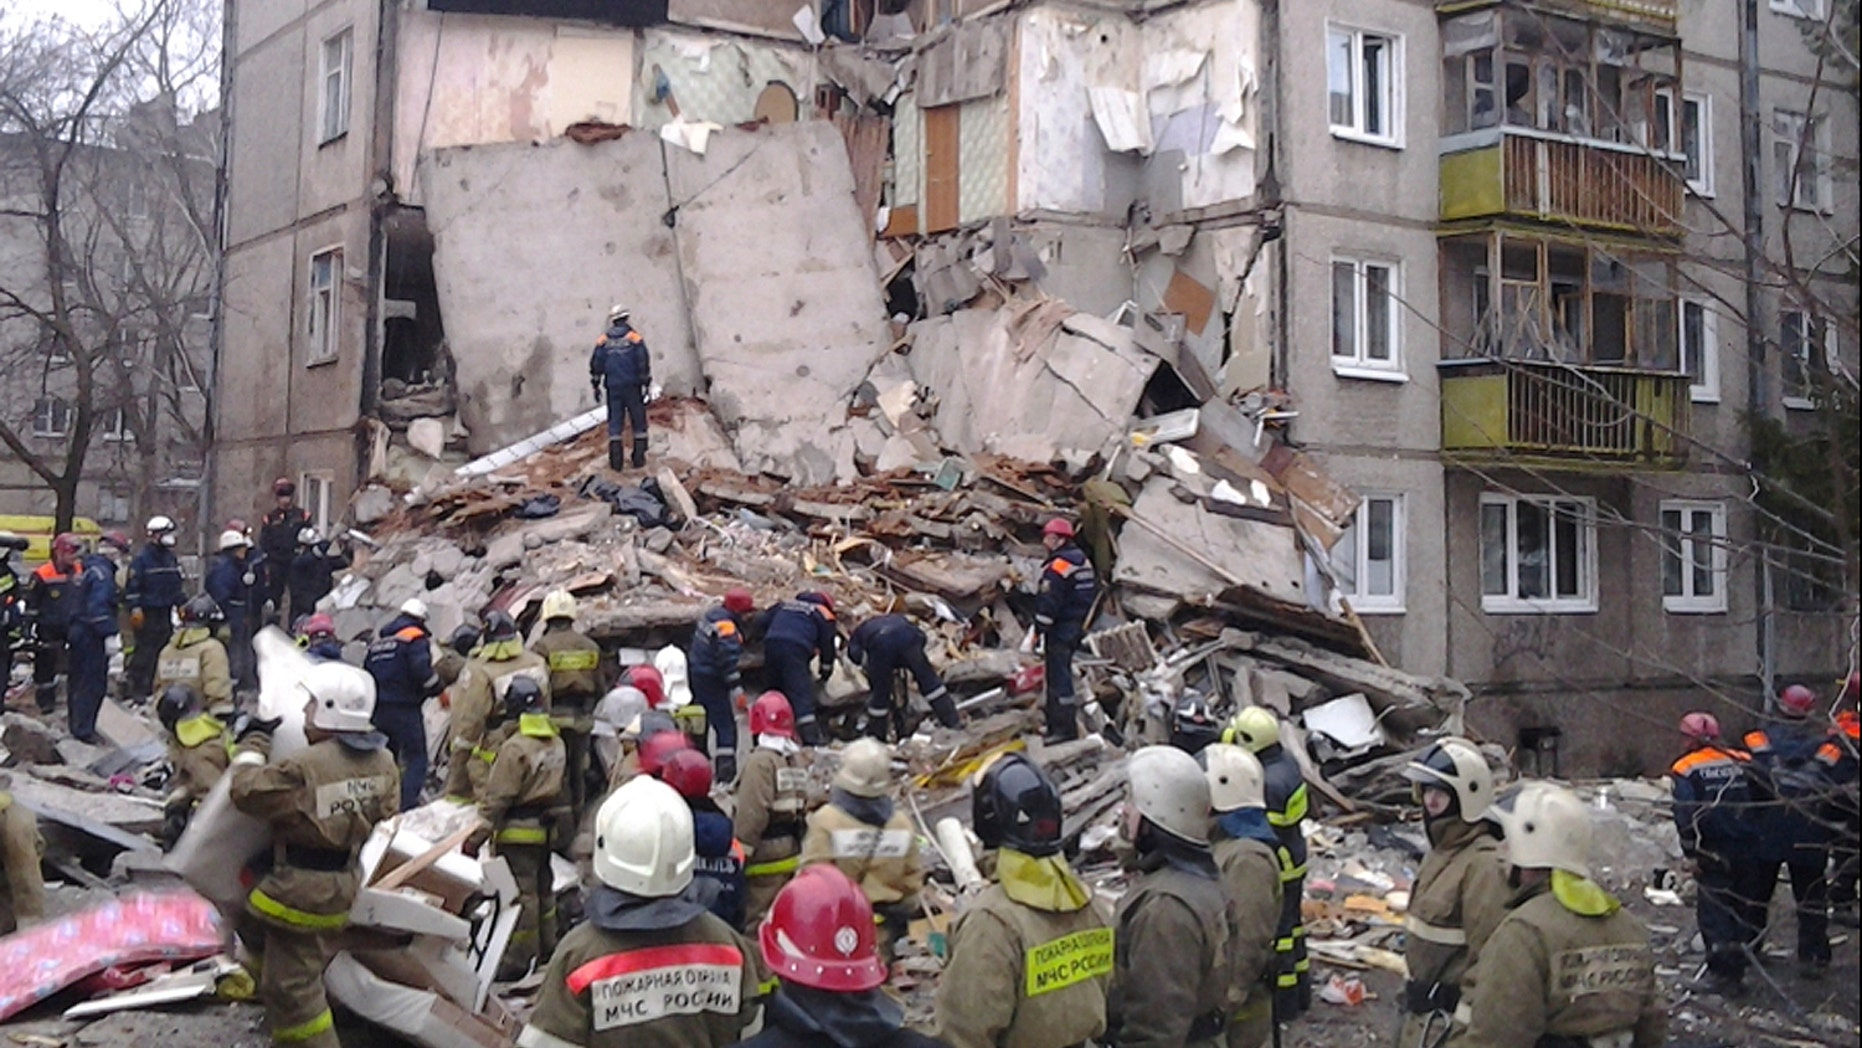 In this photo provided by the Yaroslavl Branch of Russian Emergency Ministry Press Service, emergency and rescue workers search the debris of a 5-story apartment building after a powerful natural gas explosion early Tuesday, Feb. 16, 2016, in Yaroslavl, Russia. (Russian Emergency Ministry Yaroslavl Branch Press Service via AP)